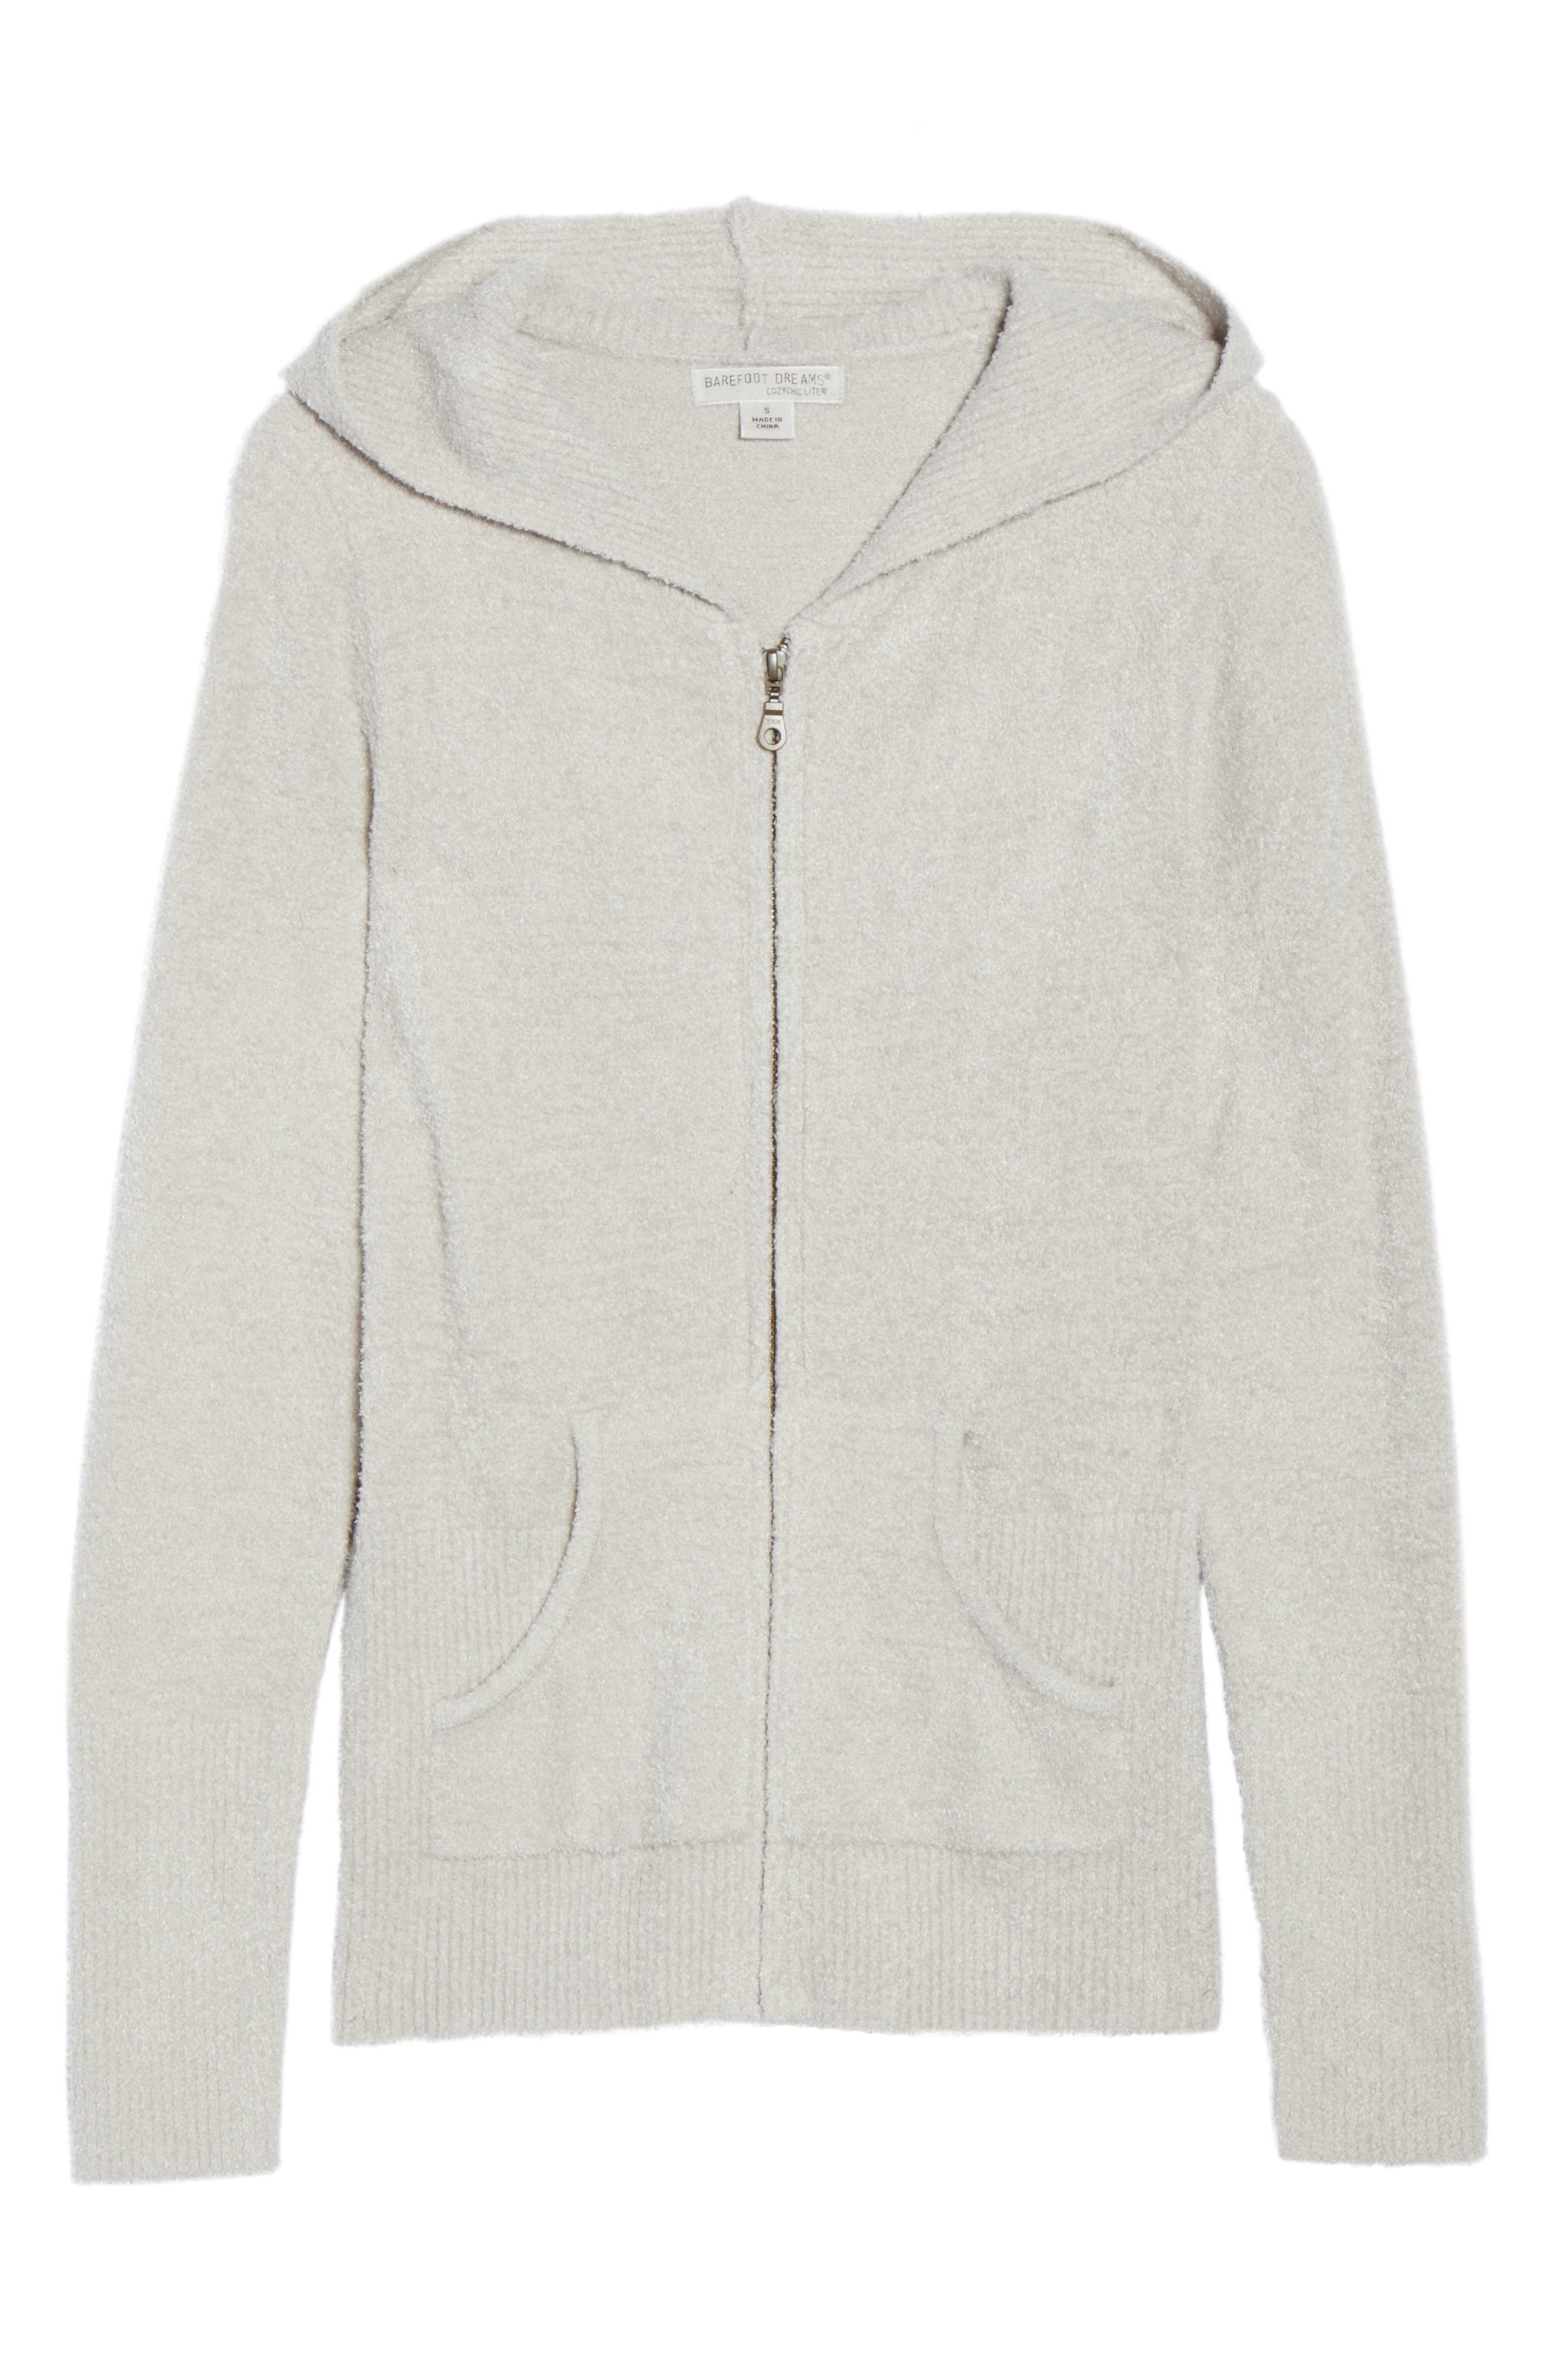 Cozychic Lite<sup>®</sup> Lounge Hoodie,                             Alternate thumbnail 6, color,                             Silver